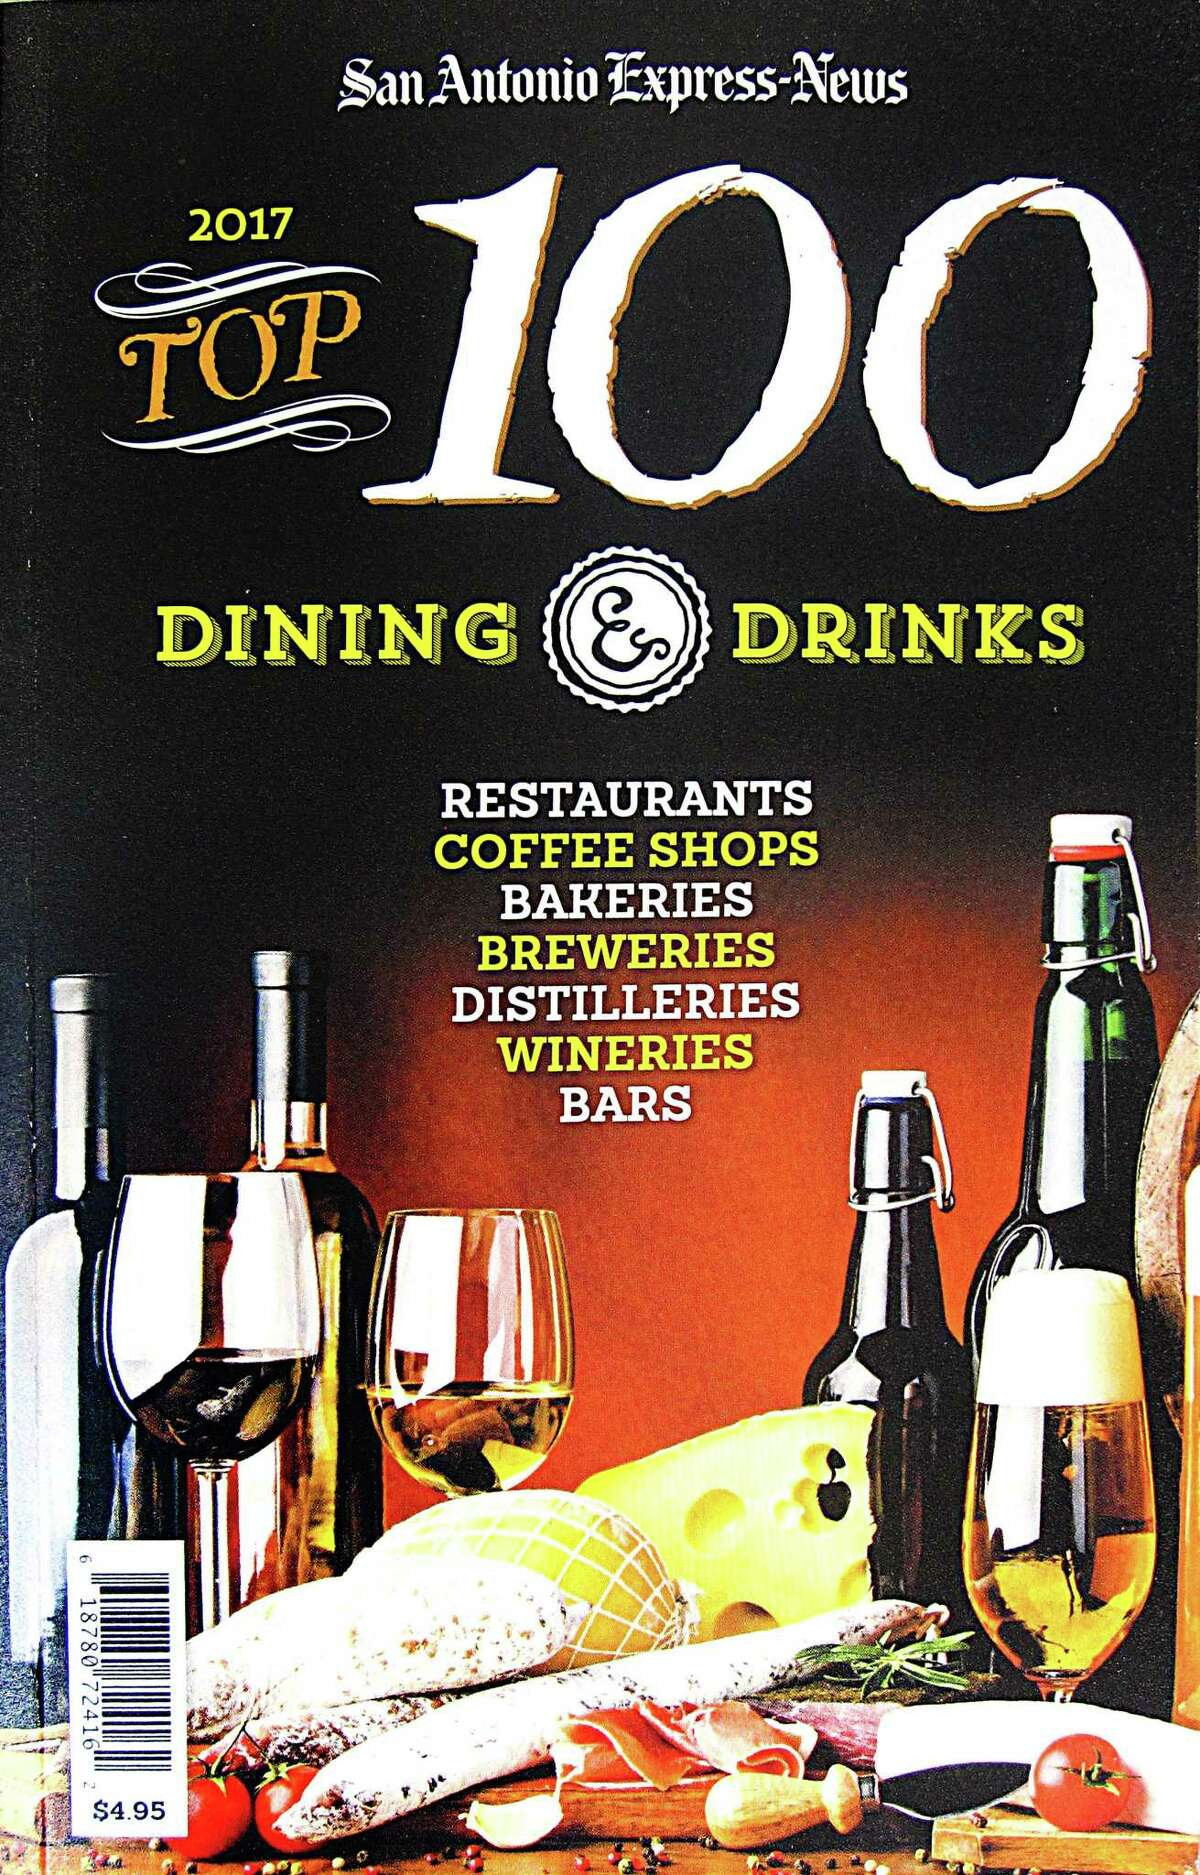 The 2017 Top 100 Dining & Drinks guide from the San Antonio Express-News.